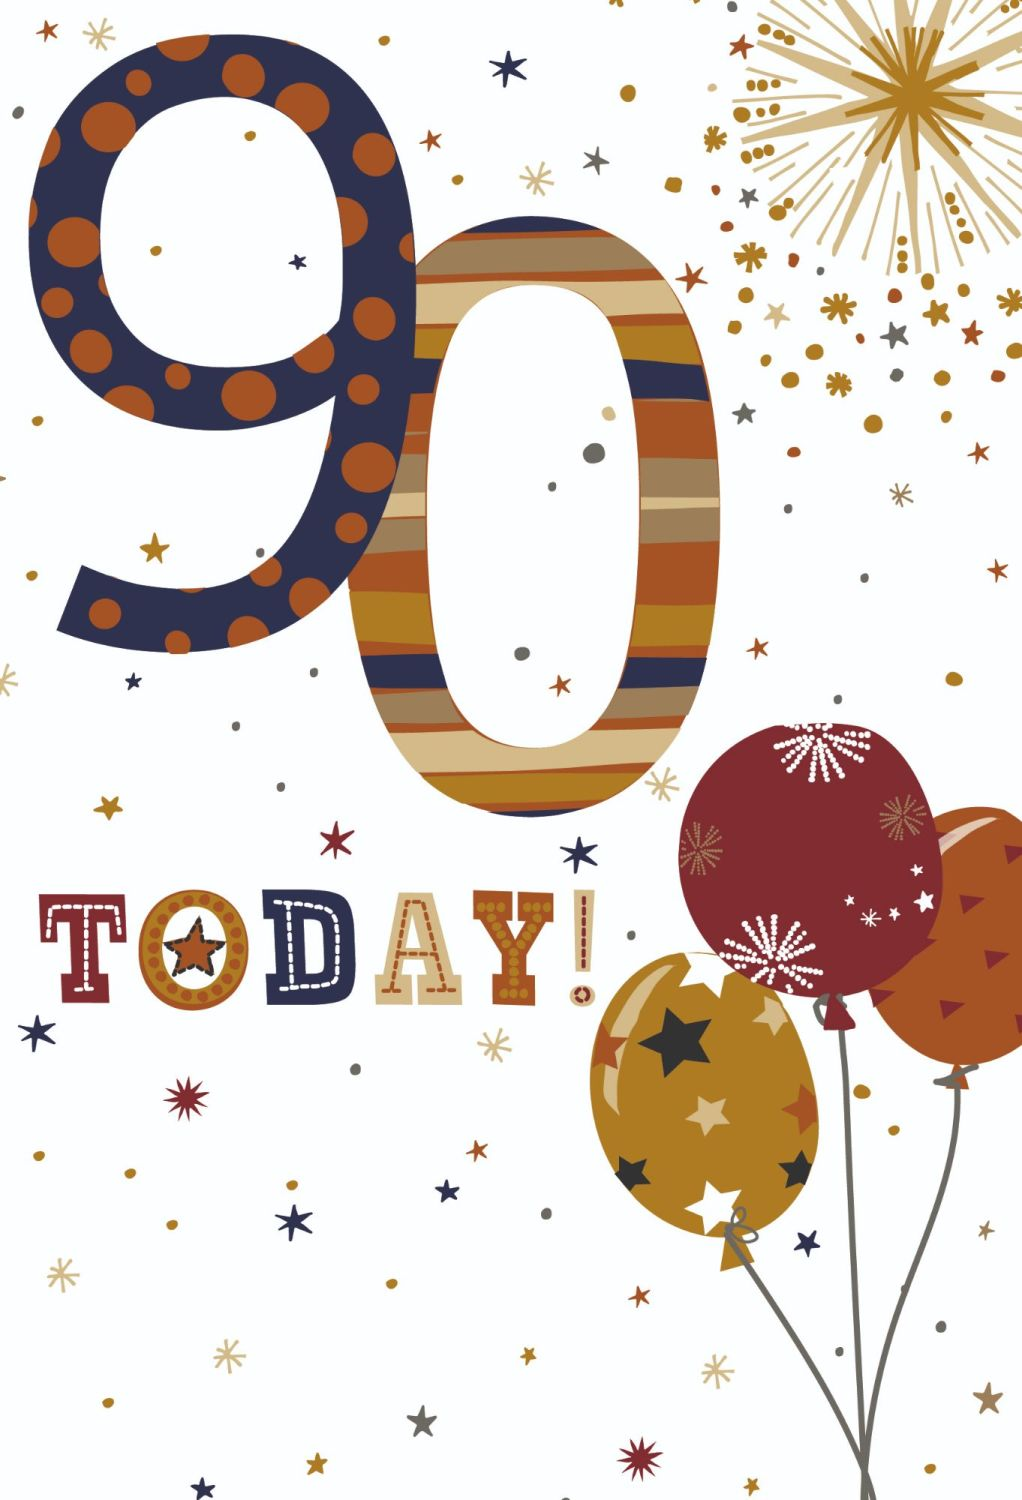 90th Birthday Cards For Him - 90 TODAY - BALLOONS Birthday CARD - 90th BIRT